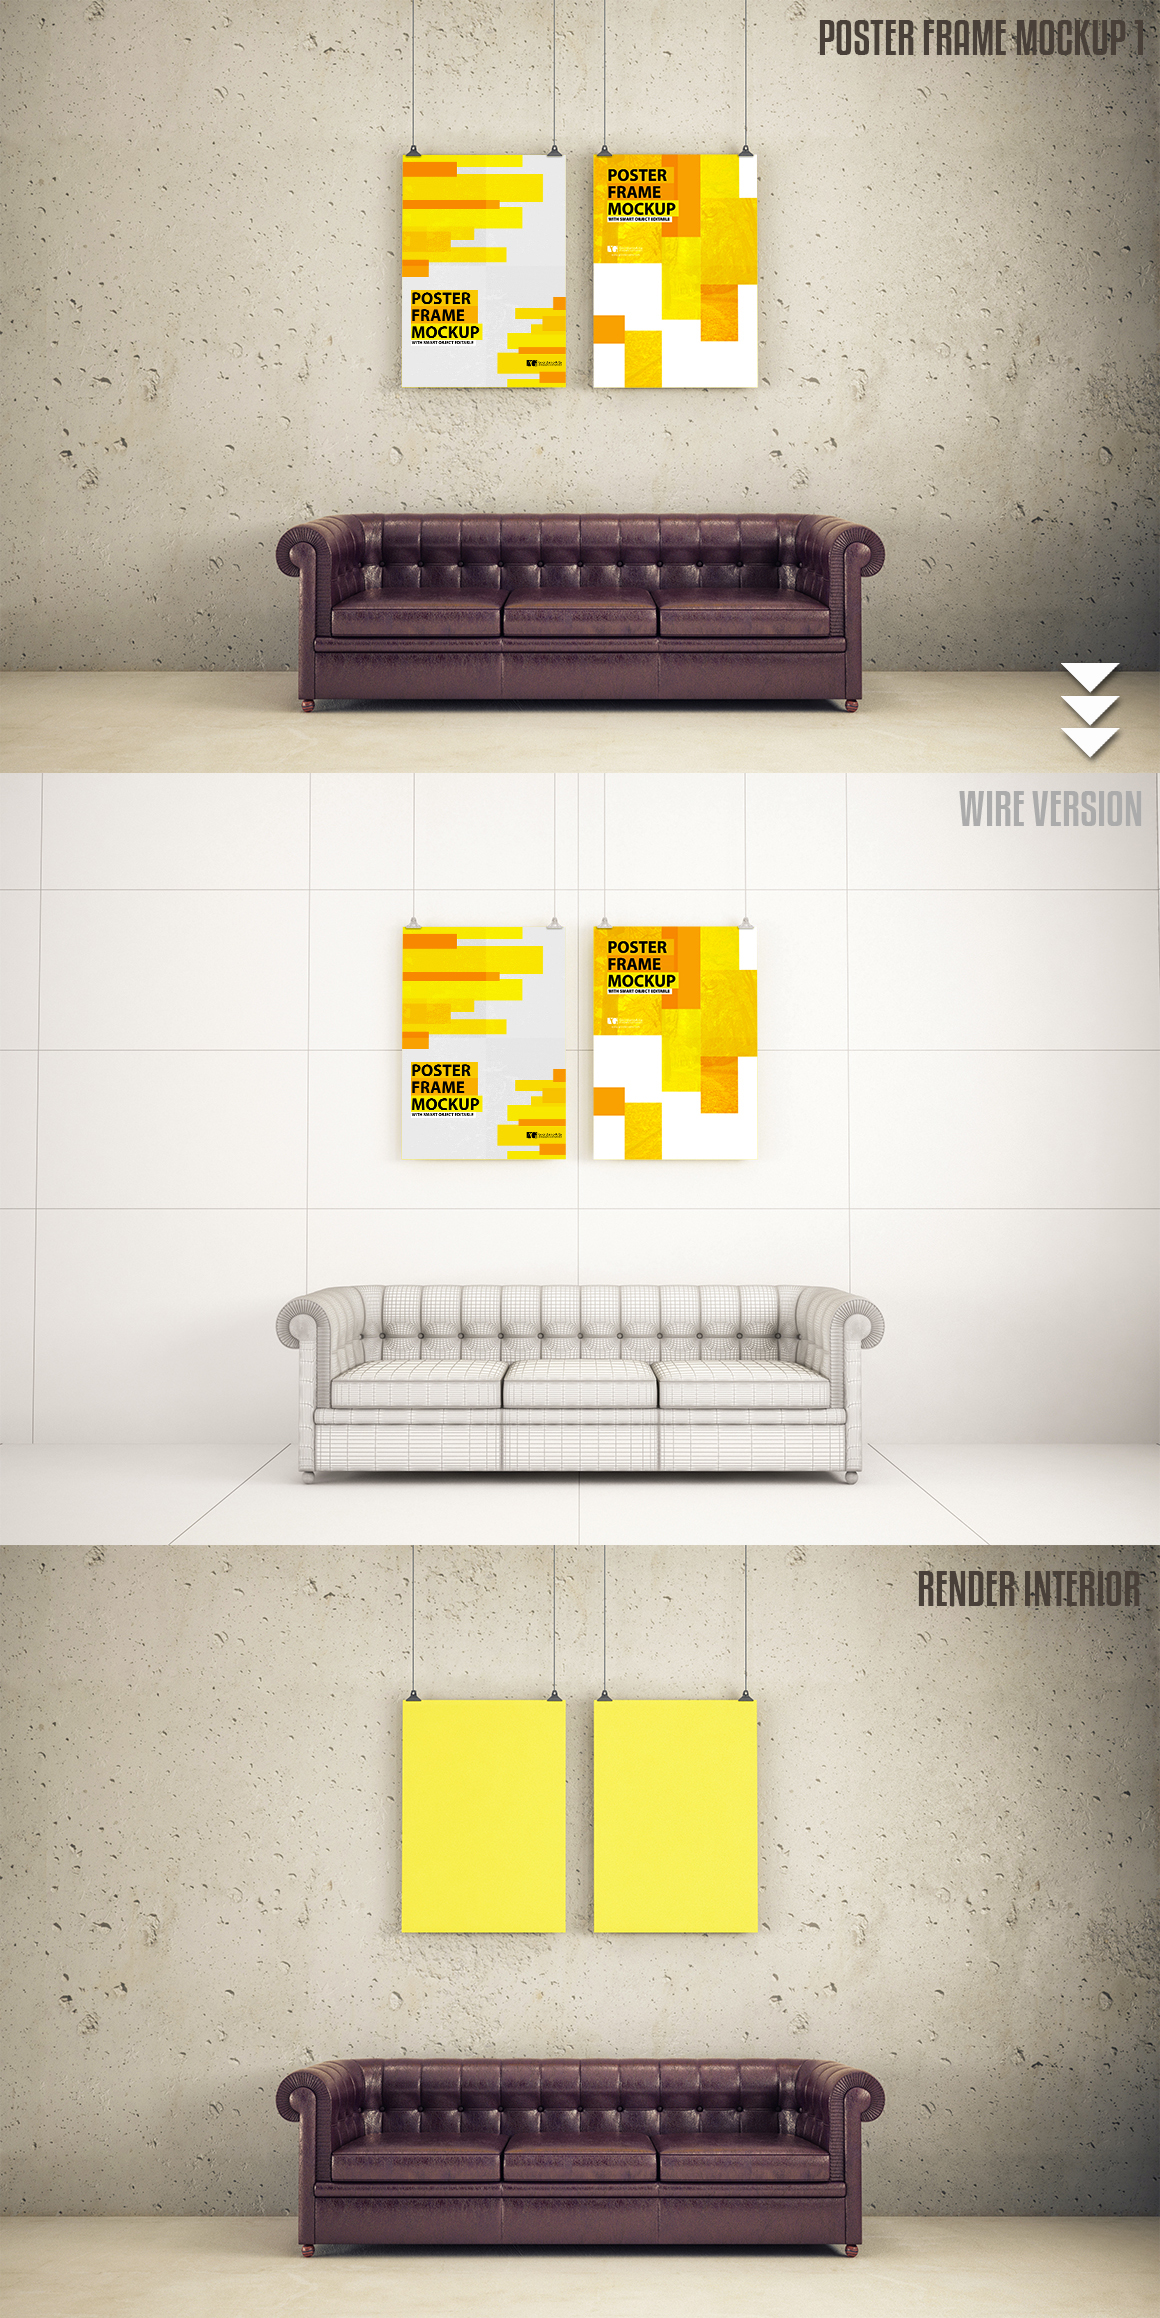 Interiors Mock-up Vol. 3 example image 8